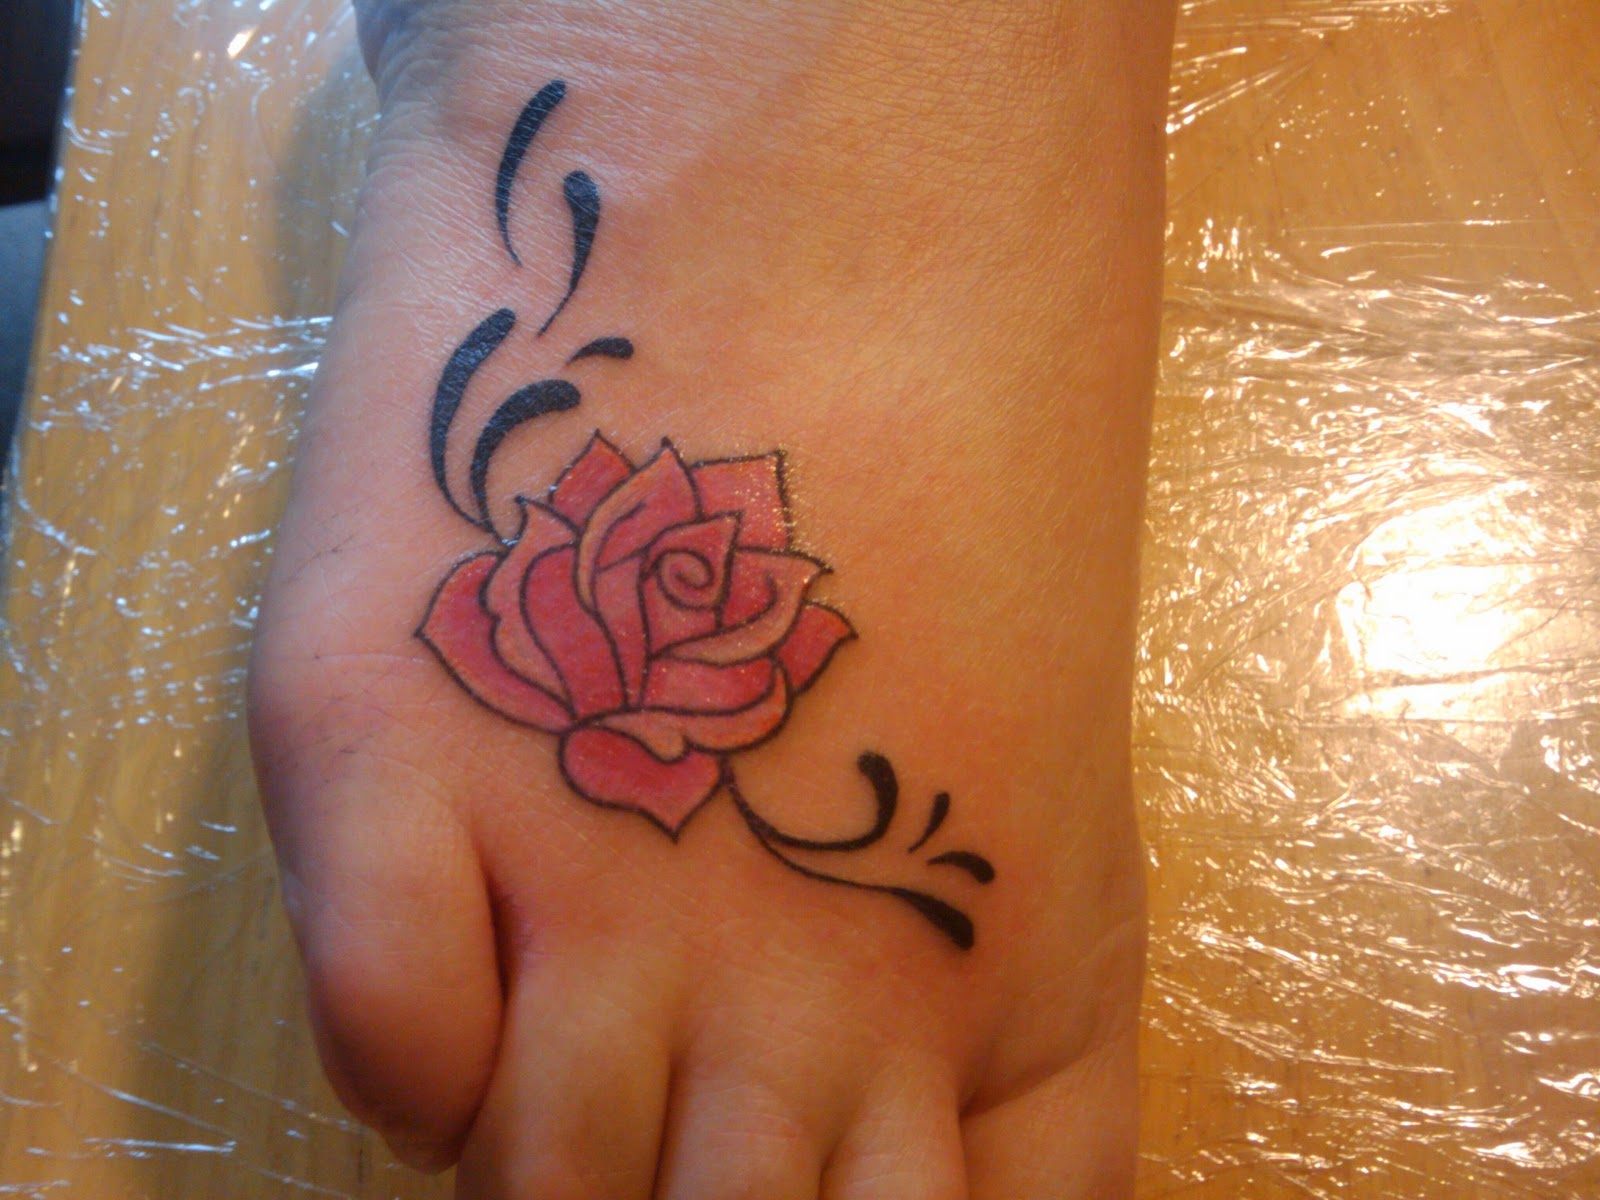 Rose Tattoos Designs Ideas And Meaning Tattoos For You Ideas And Designs